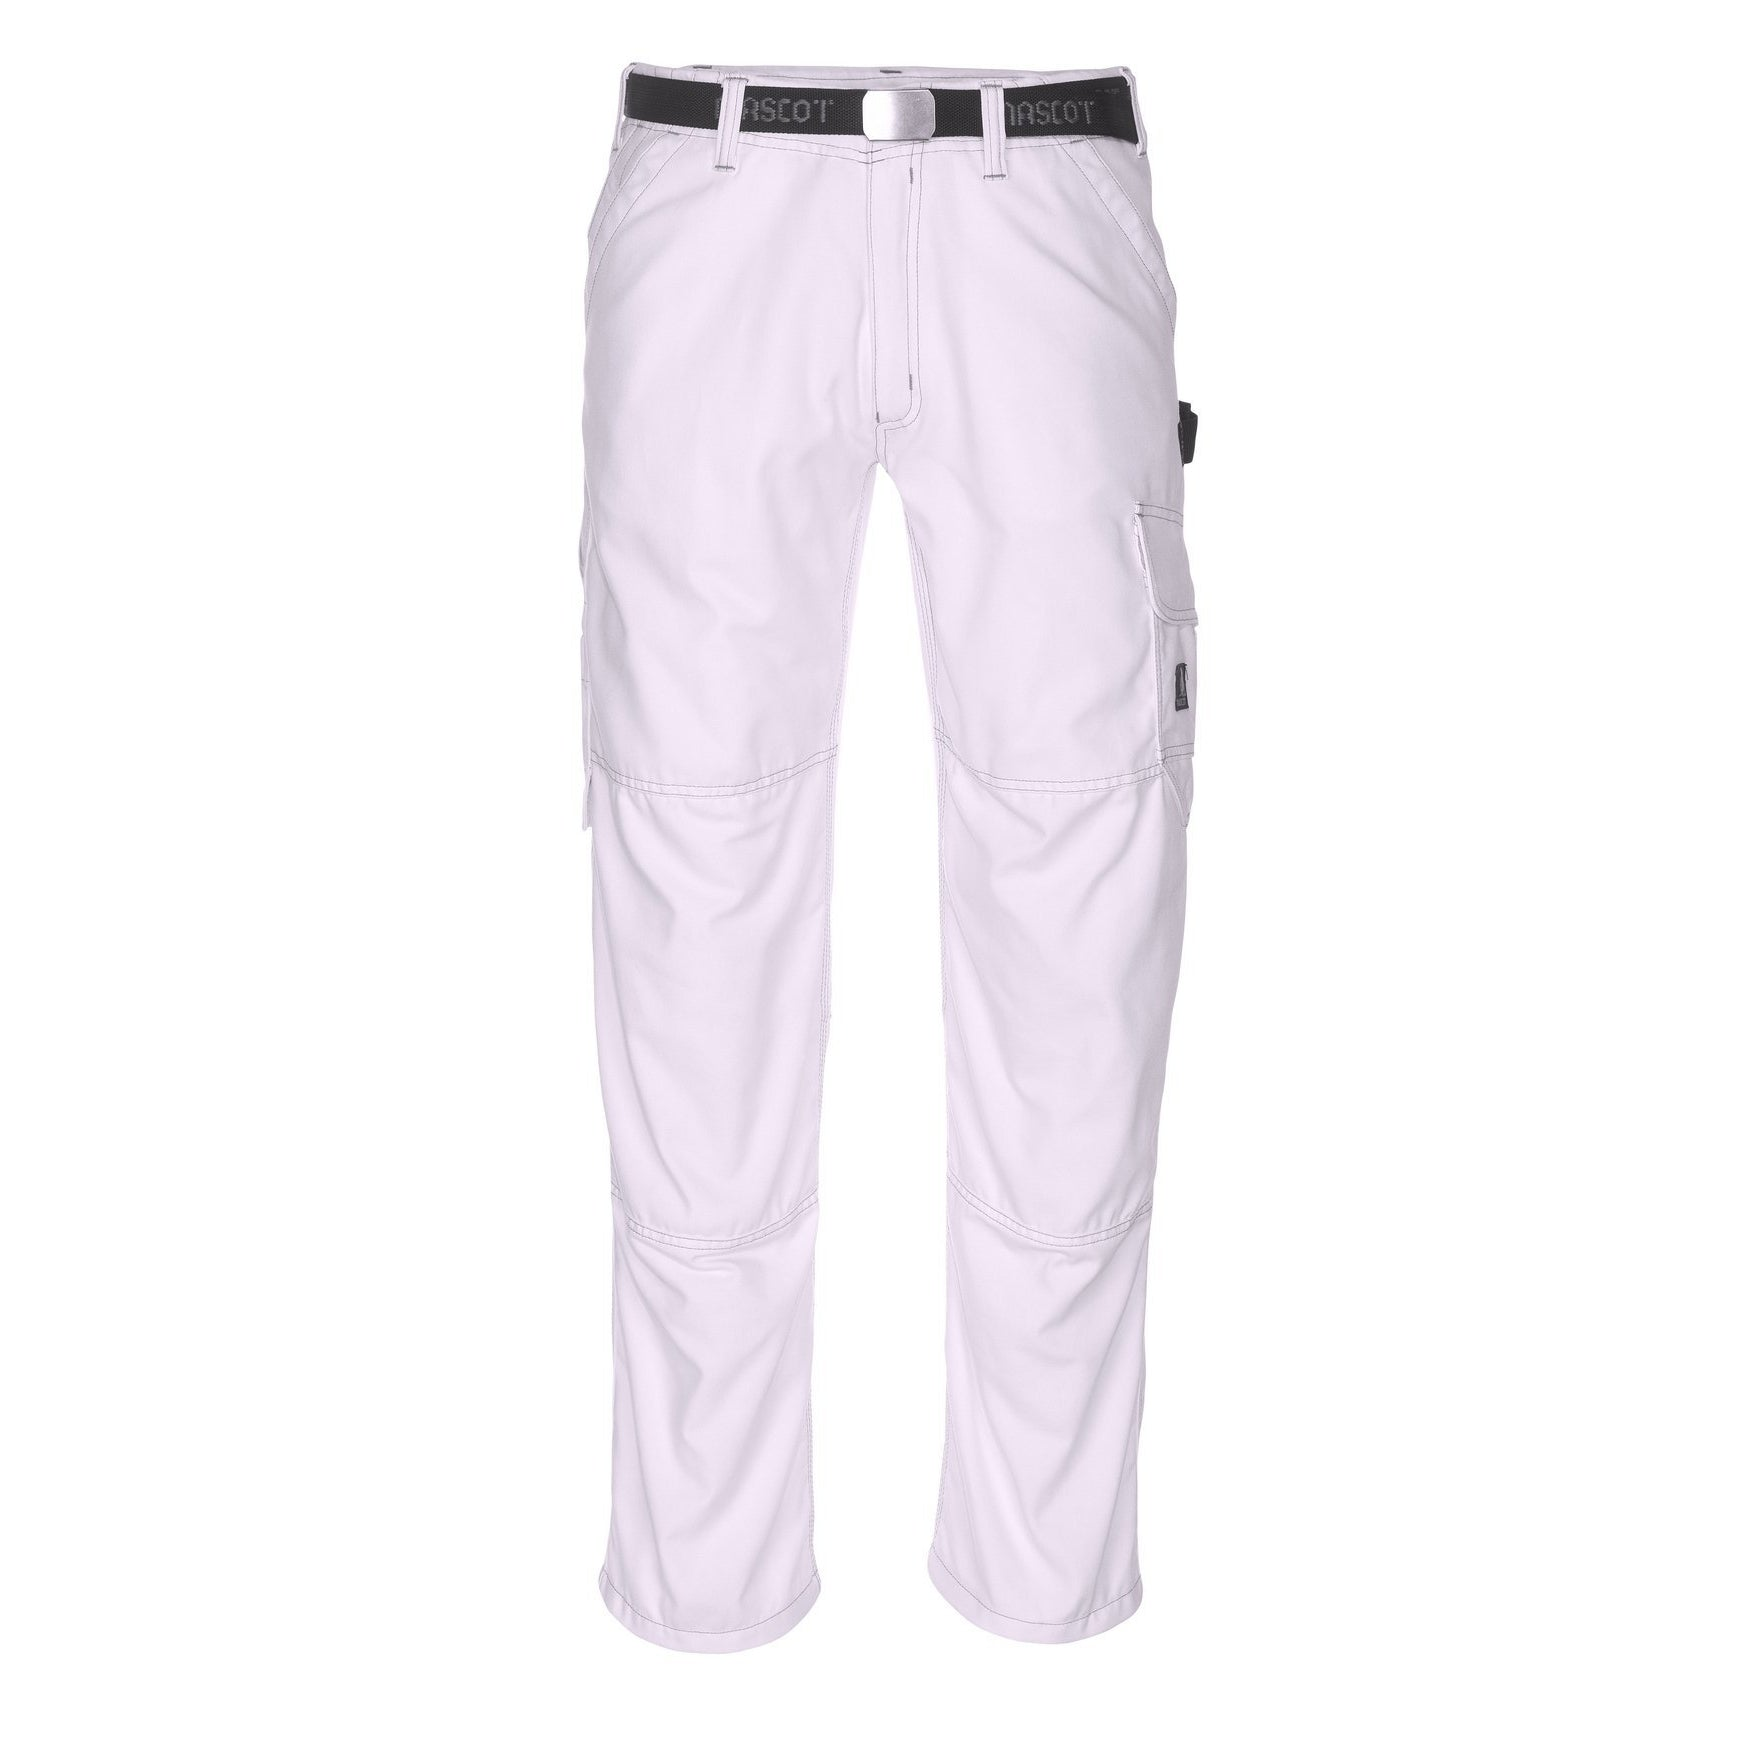 Mascot Totana Hardwear Trousers With Thigh Pockets